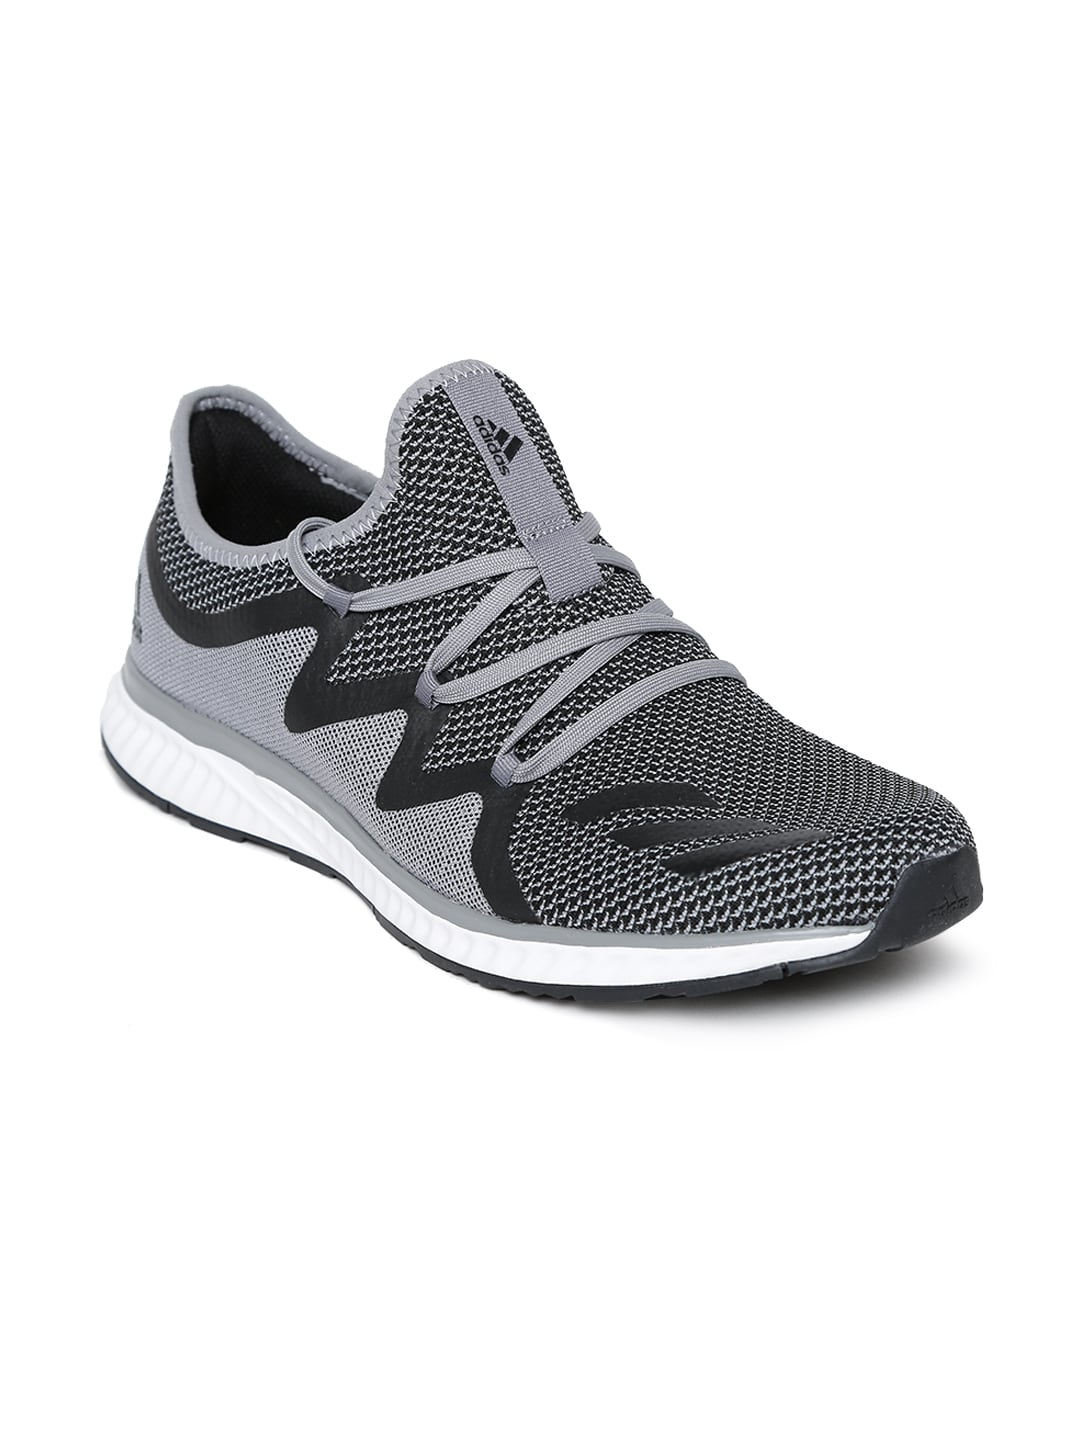 Adidas Black Shoes - Buy Adidas Black Shoes Online in India 53f763694